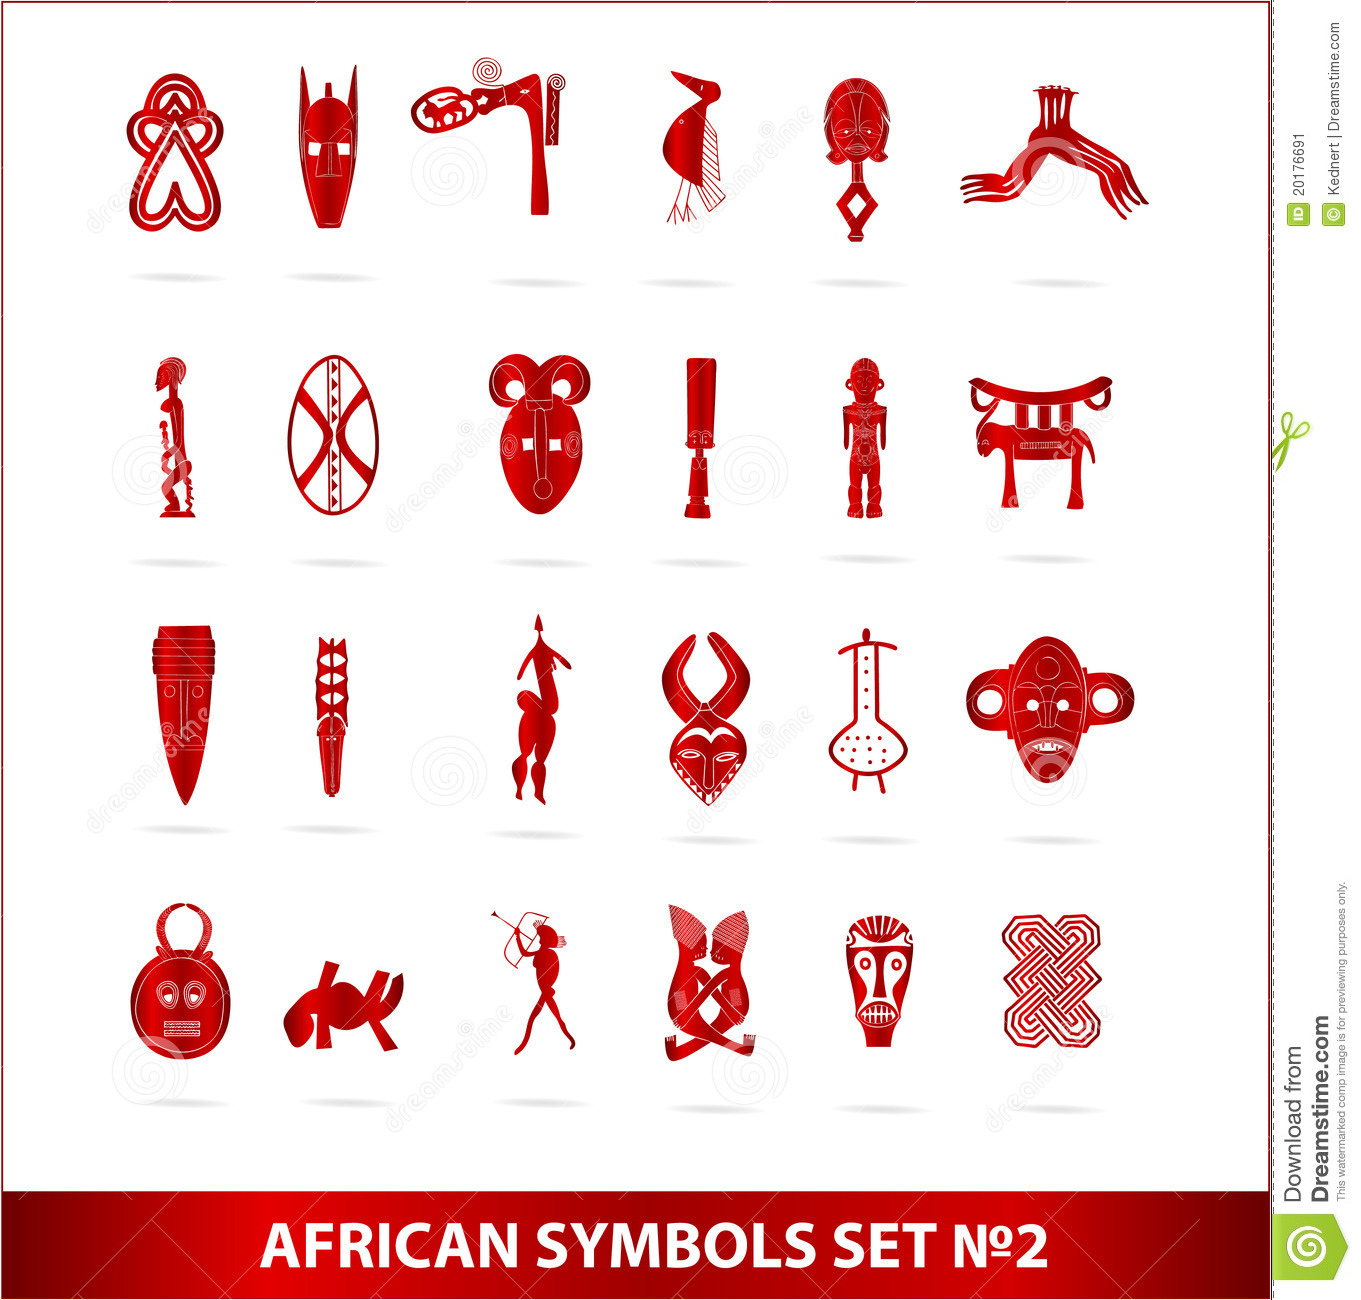 Adinkra symbols stock vector illustration of symbols 16457489 god african symbols set red color stock image biocorpaavc Image collections